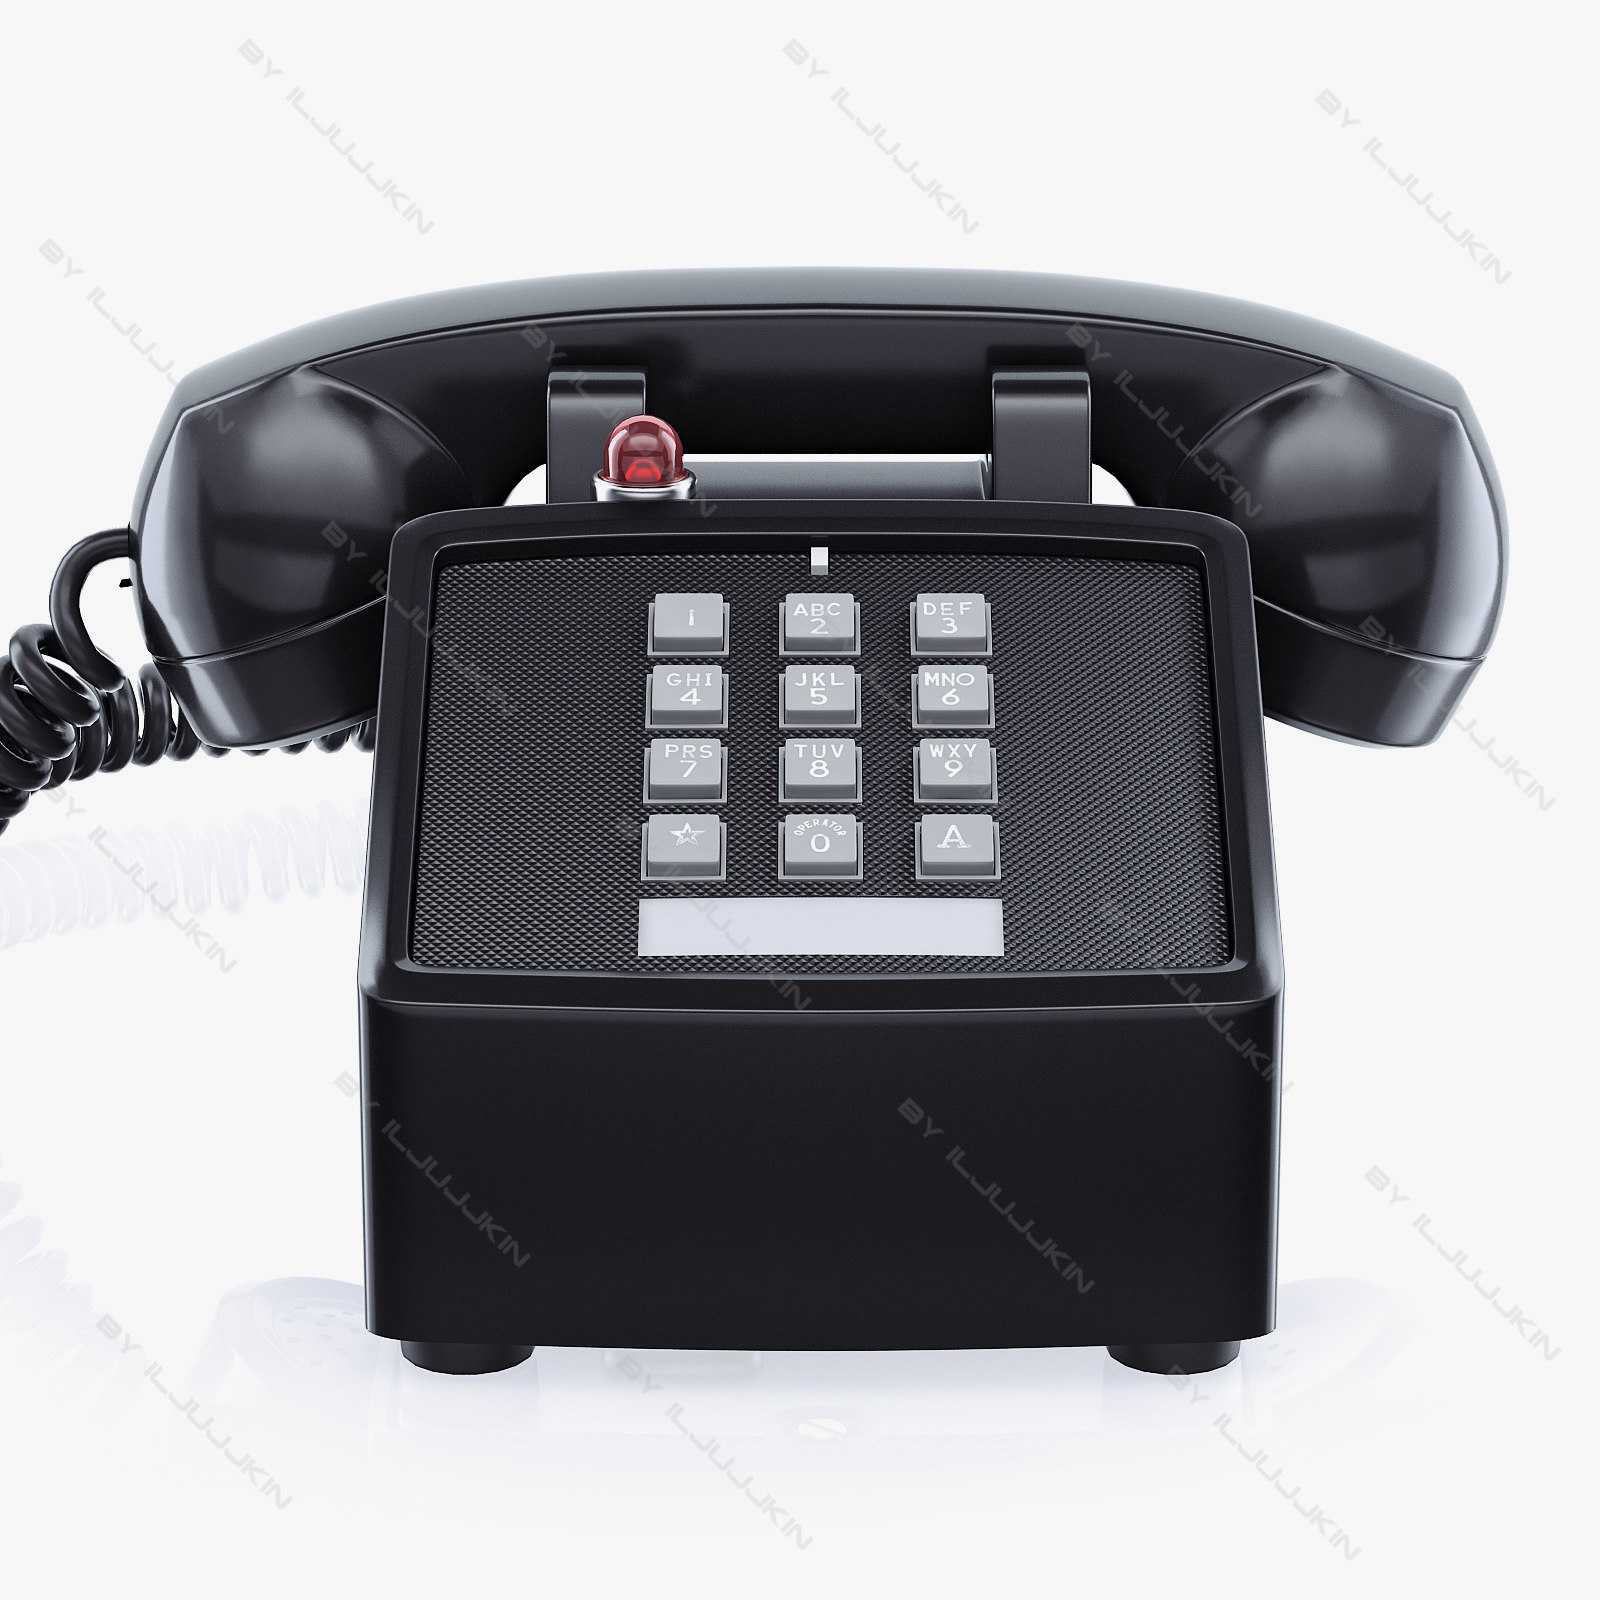 Retro_Phone_key_01.jpg